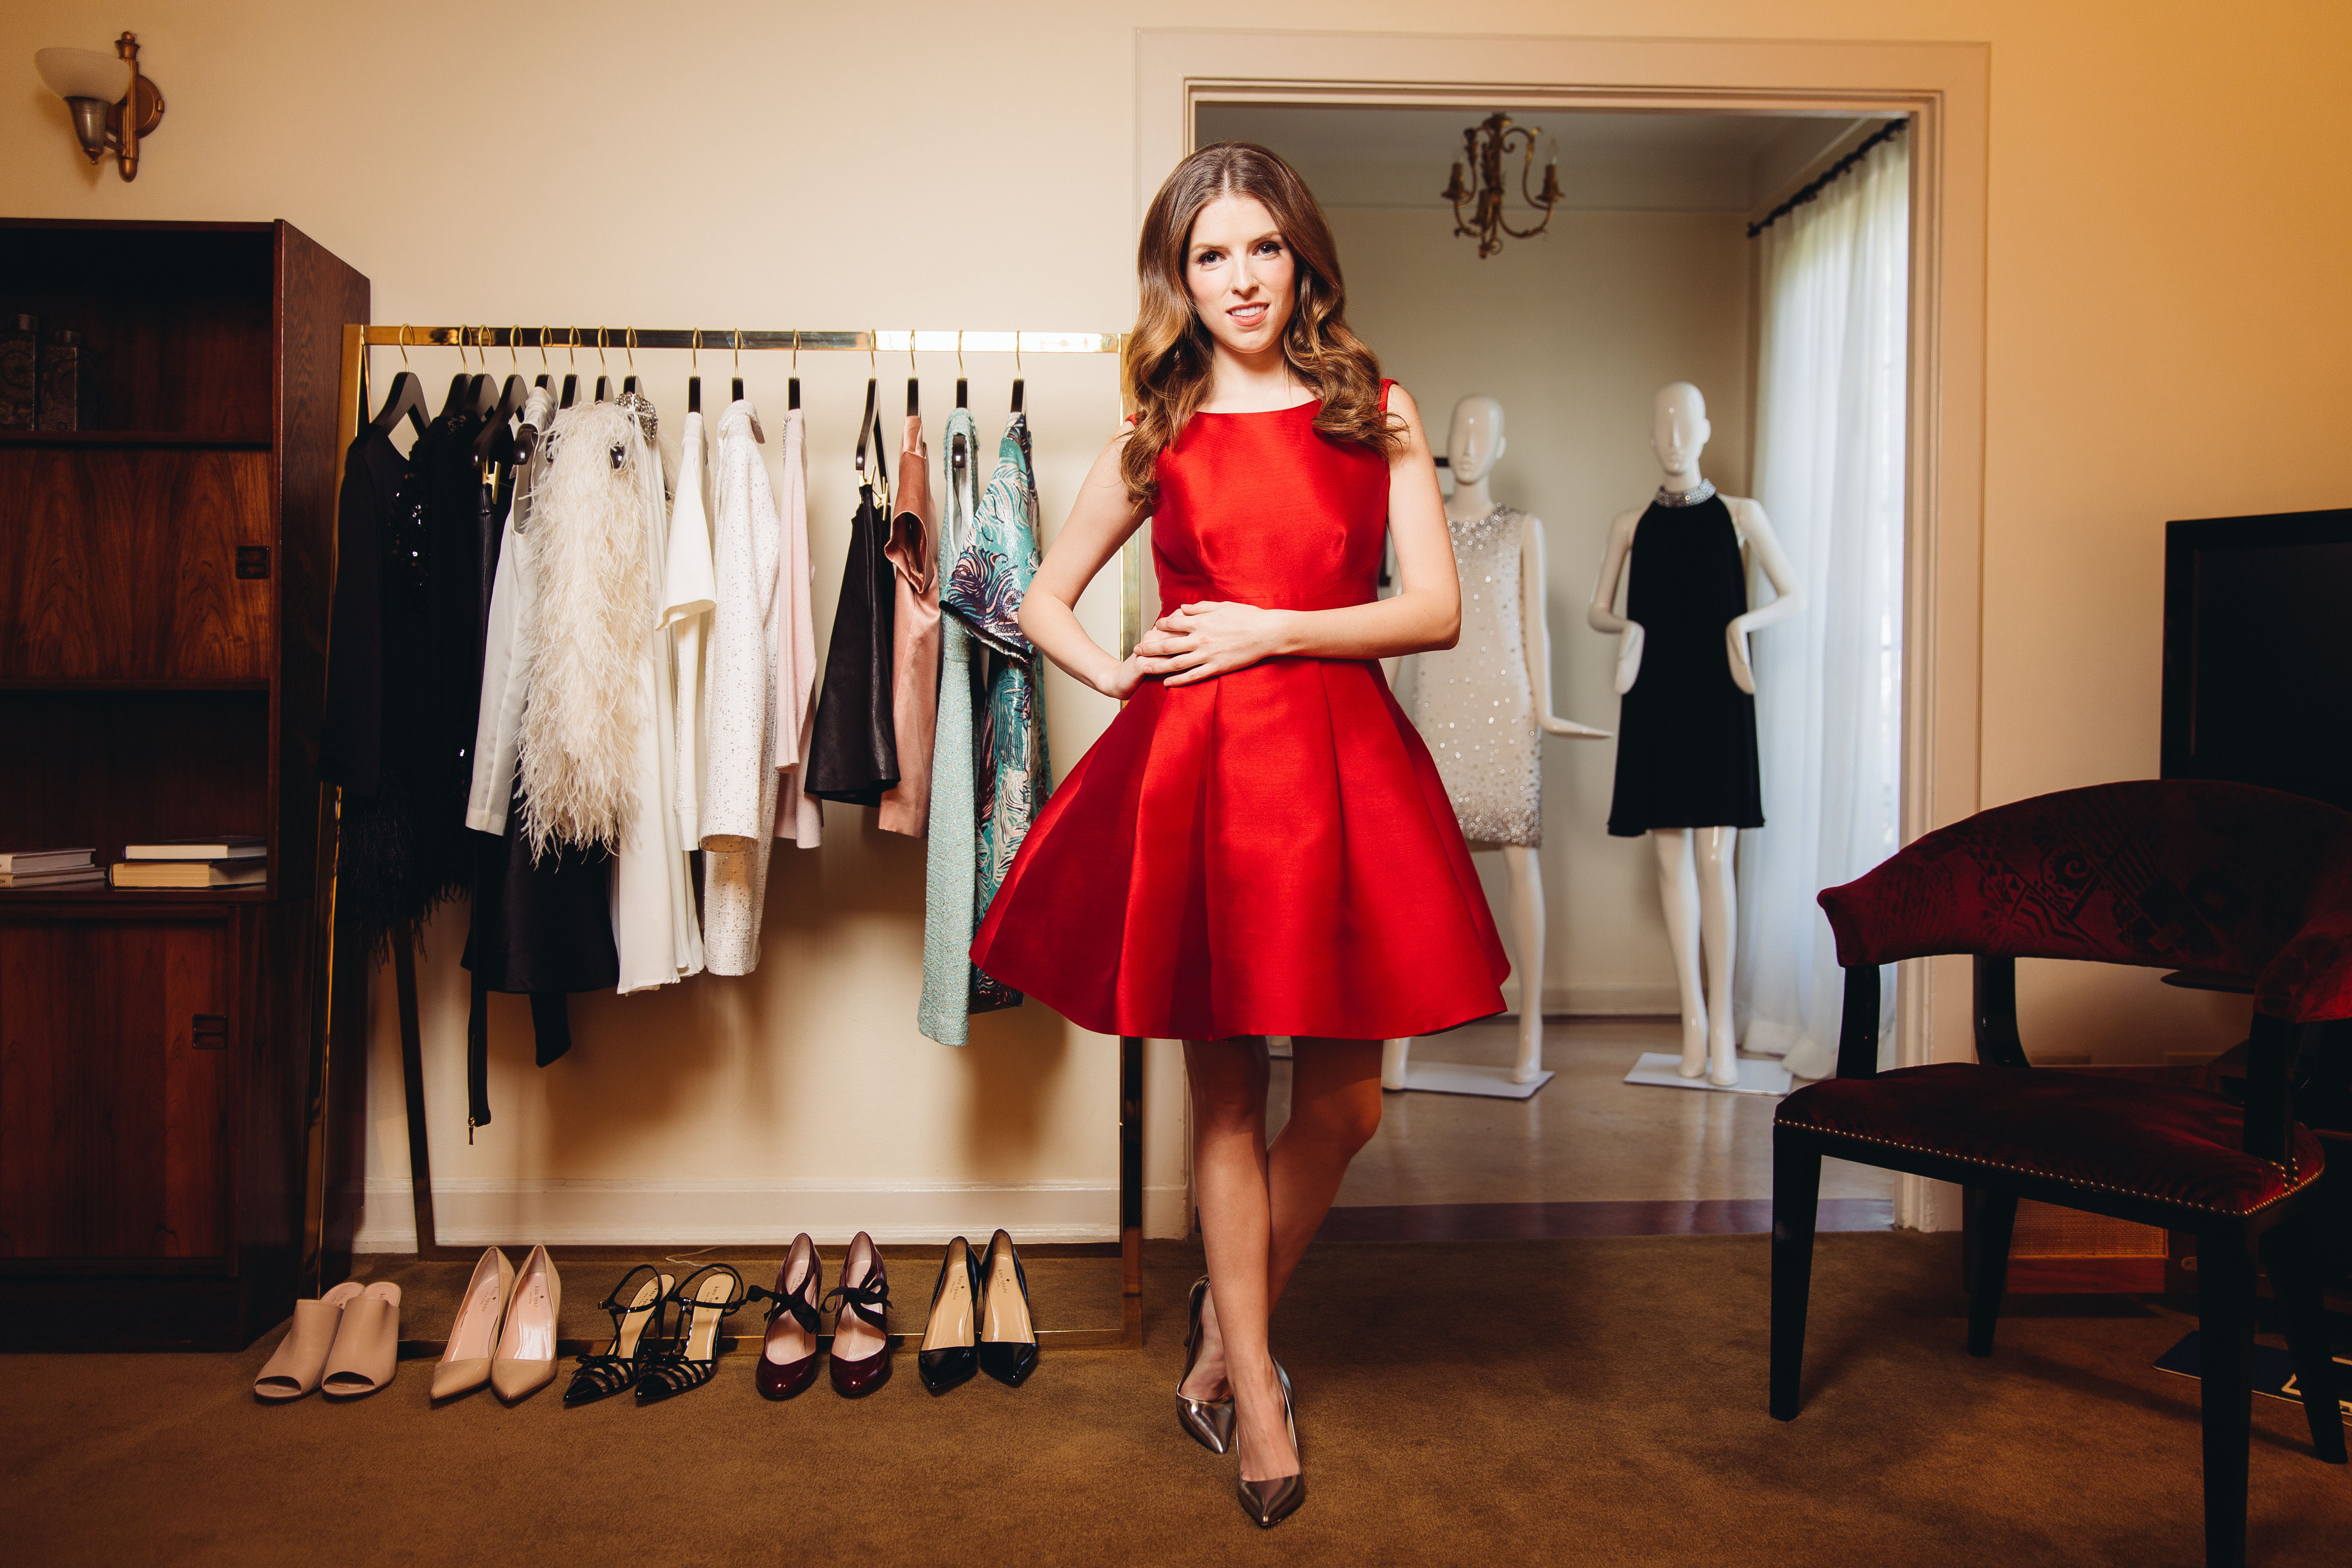 "<div class=""meta image-caption""><div class=""origin-logo origin-image ap""><span>AP</span></div><span class=""caption-text"">In this Friday, Oct. 3, 2014 photo, Anna Kendrick posesin West Hollywood, Calif. Her red, sleeveless party dress is from Kate Spade New York's holiday collection (Casey Curry/Invision/AP)</span></div>"